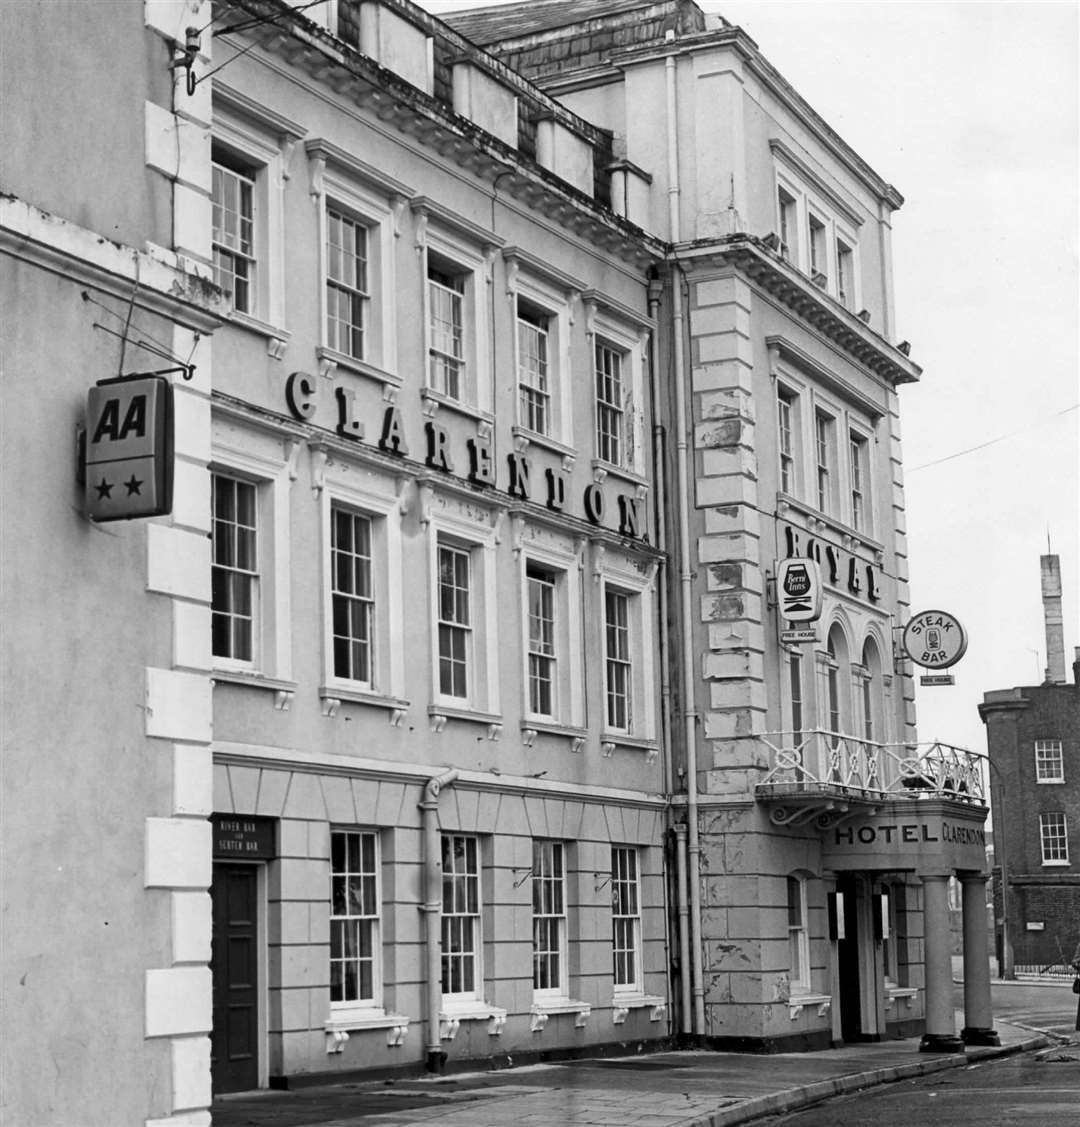 The Clarendon Hotel in Gravesend, pictured in 1980. It was rumoured to have not one ghost but two